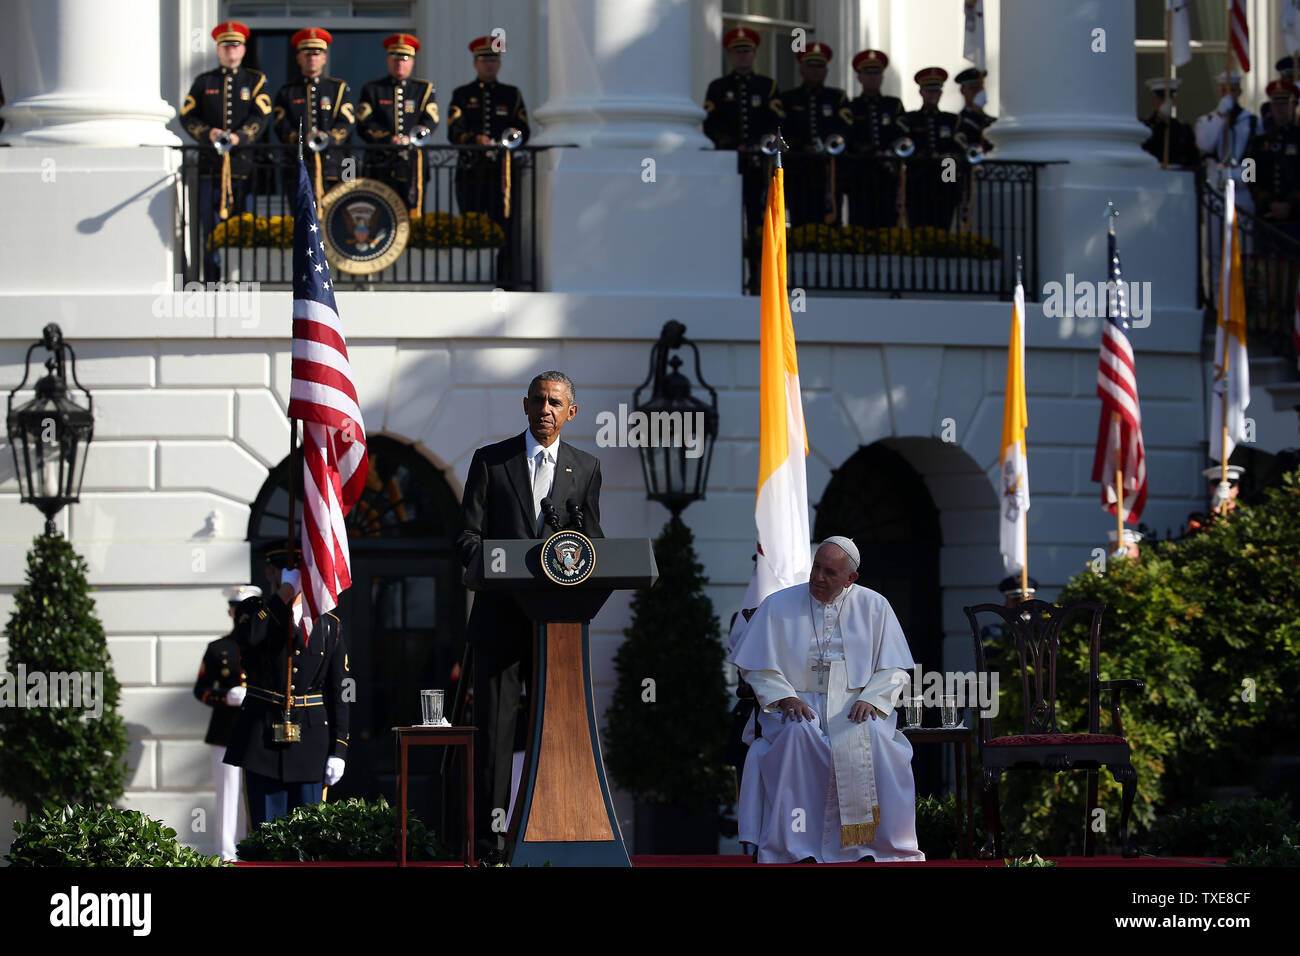 WASHINGTON, DC - SEPTEMBER 23:  U.S. President Barack Obama speaks during the arrival ceremony for Pope Francis at the White House on September 23, 2015 in Washington, DC. The Pope begins his first trip to the United States at the White House followed by a visit to St. Matthew's Cathedral, and will then hold a Mass on the grounds of the Basilica of the National Shrine of the Immaculate Conception.  (Photo by Win McNamee/Getty Images) - Stock Image